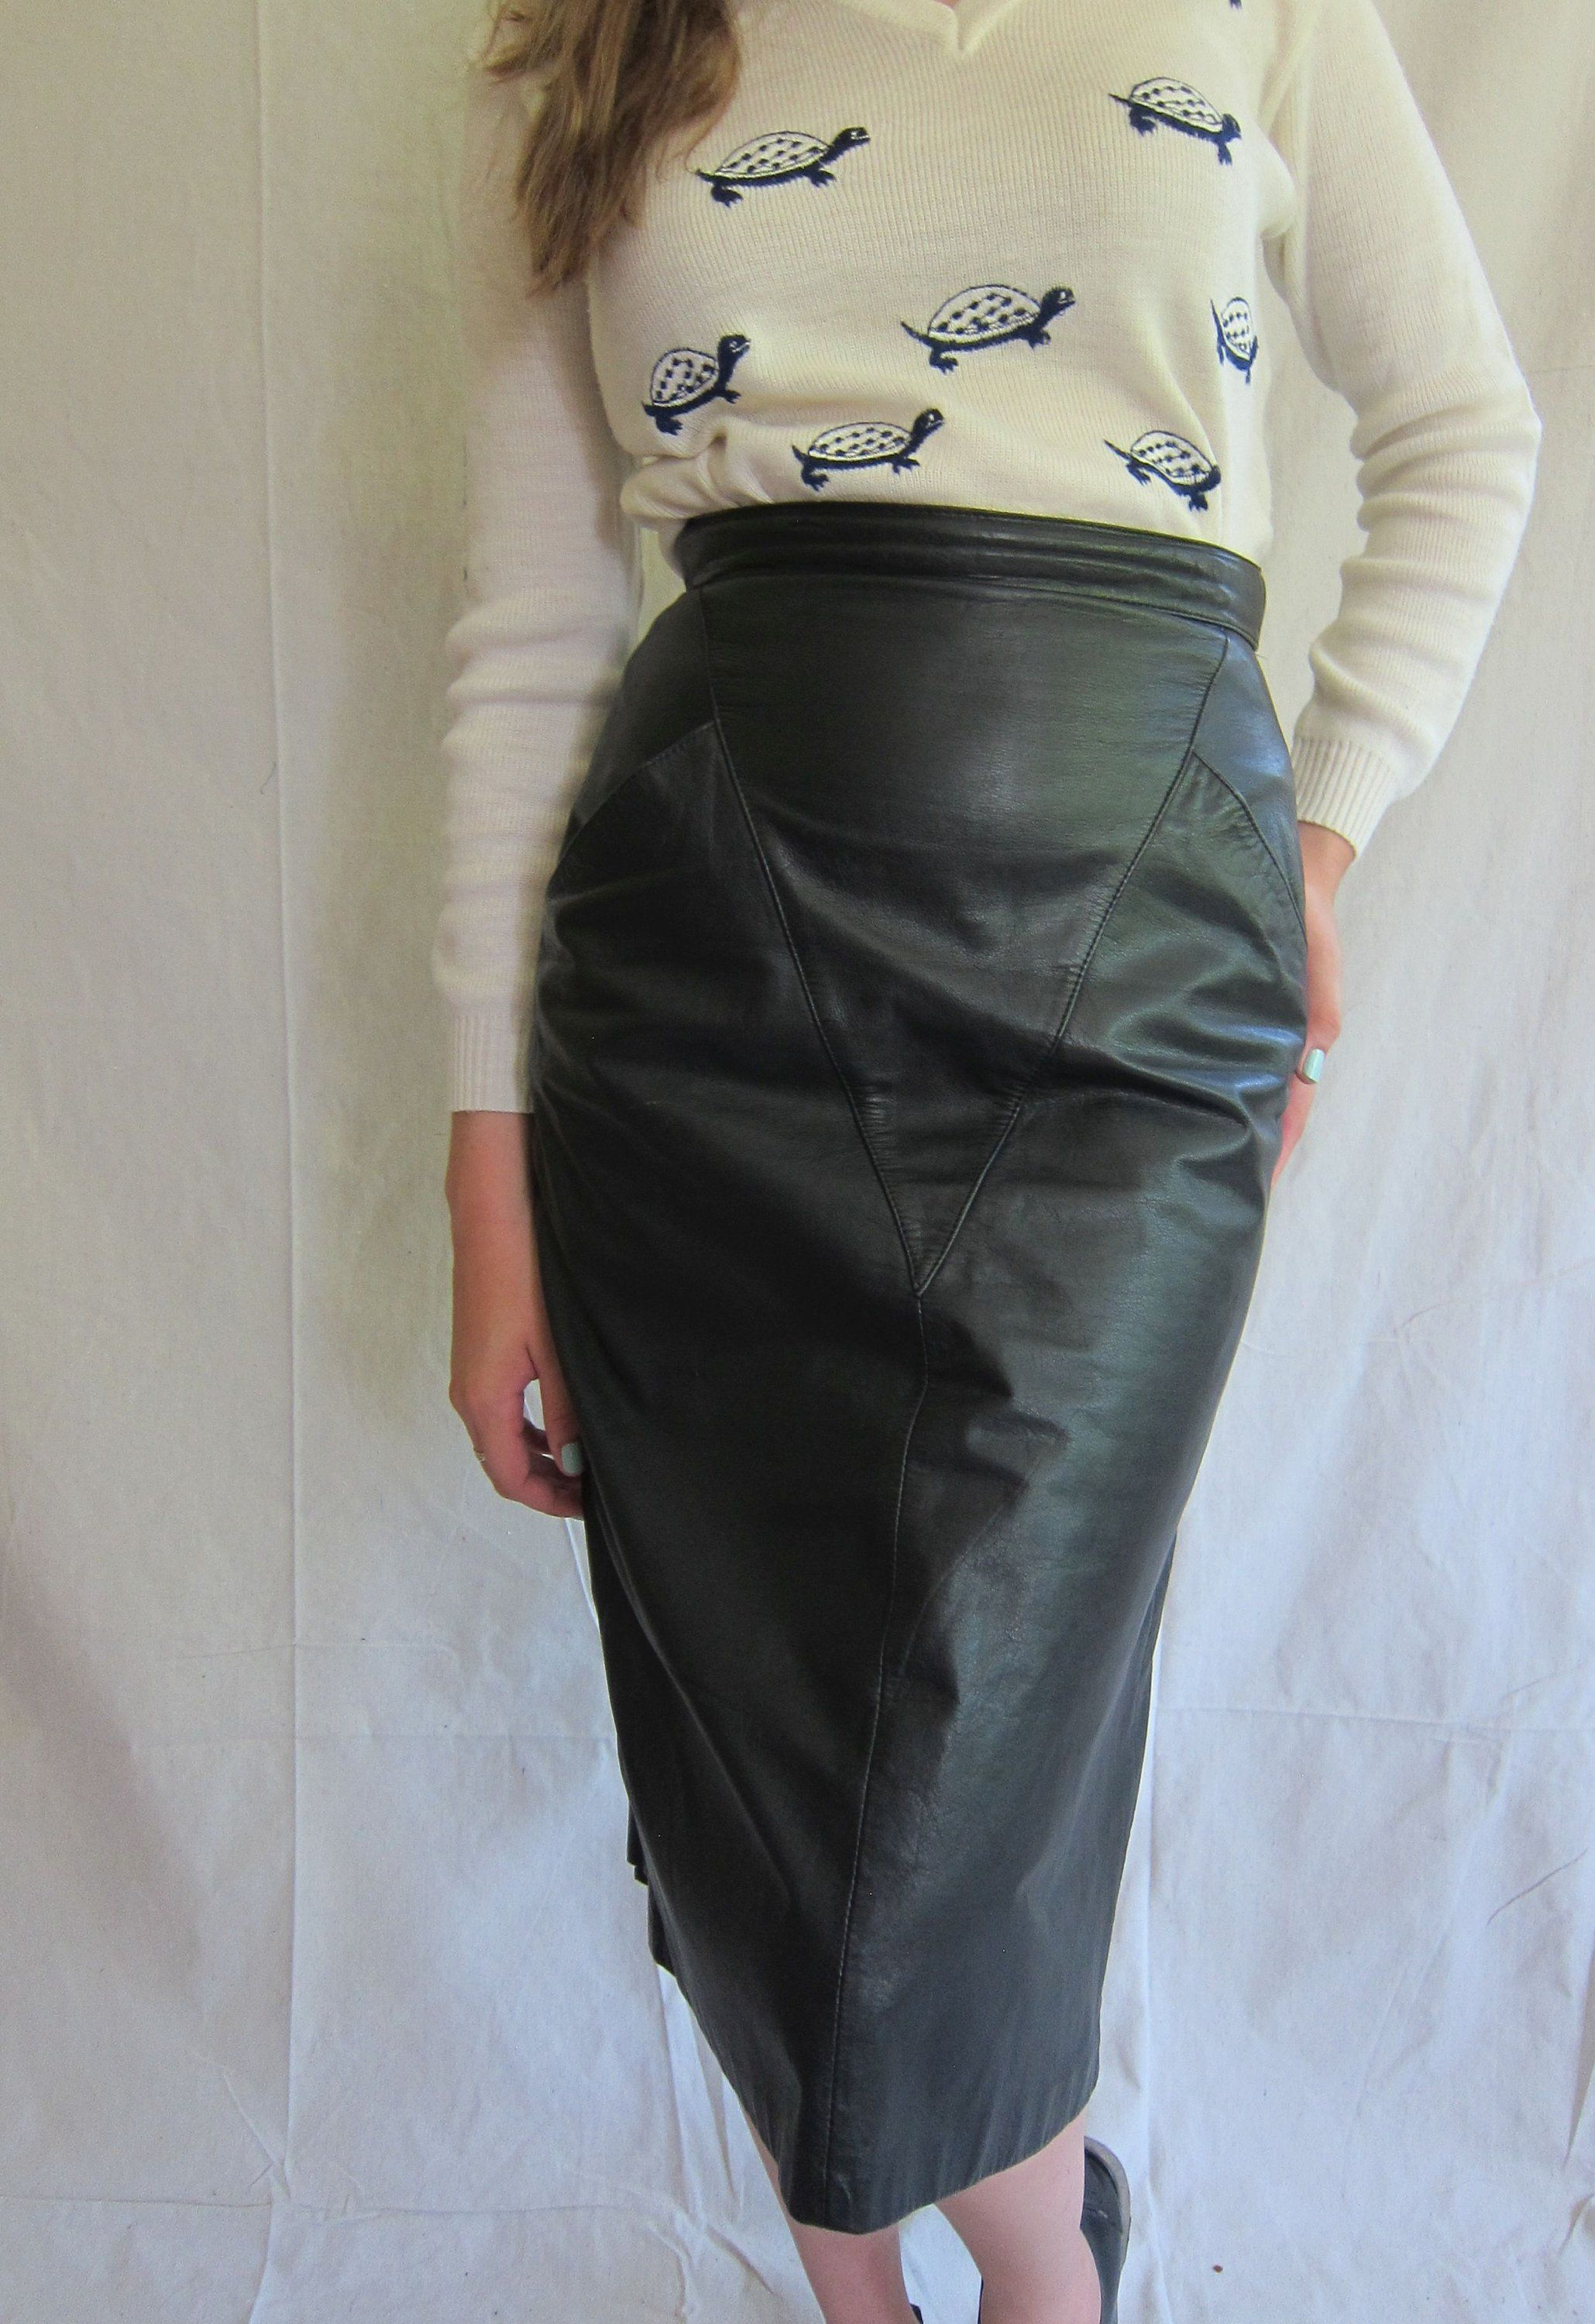 36ec16bd73a7 1980s Leather Skirt / 80s Black Leather High Waisted Skirt / Midi Length Pencil  Skirt by Winlit / Small by BasyaBerkman on Etsy